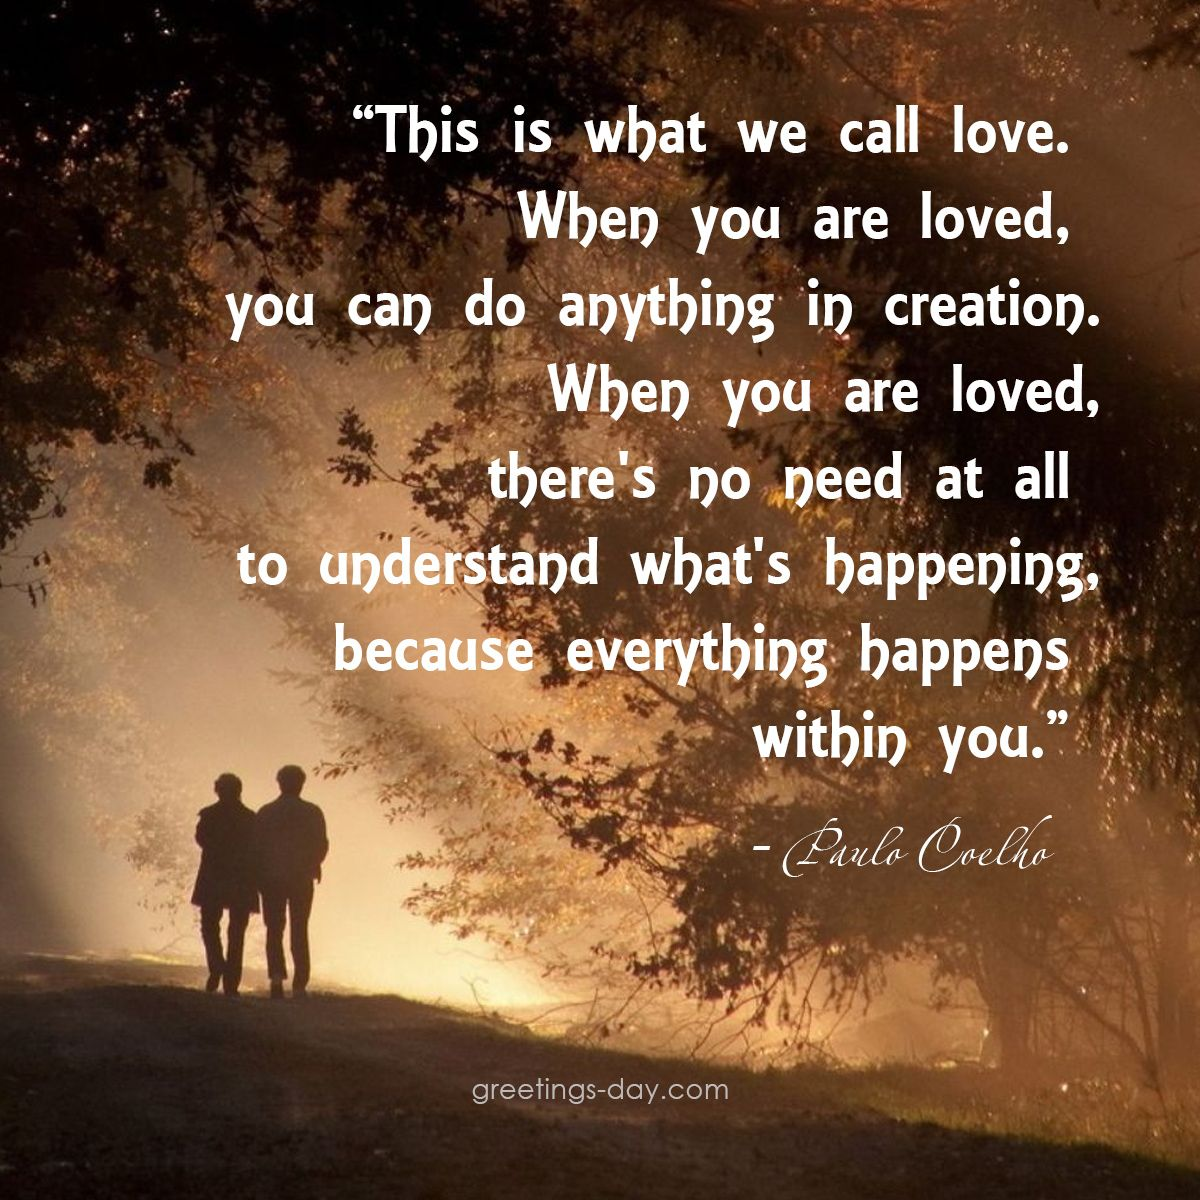 LifeQuotes LoveQuotes QUOTES greetings day